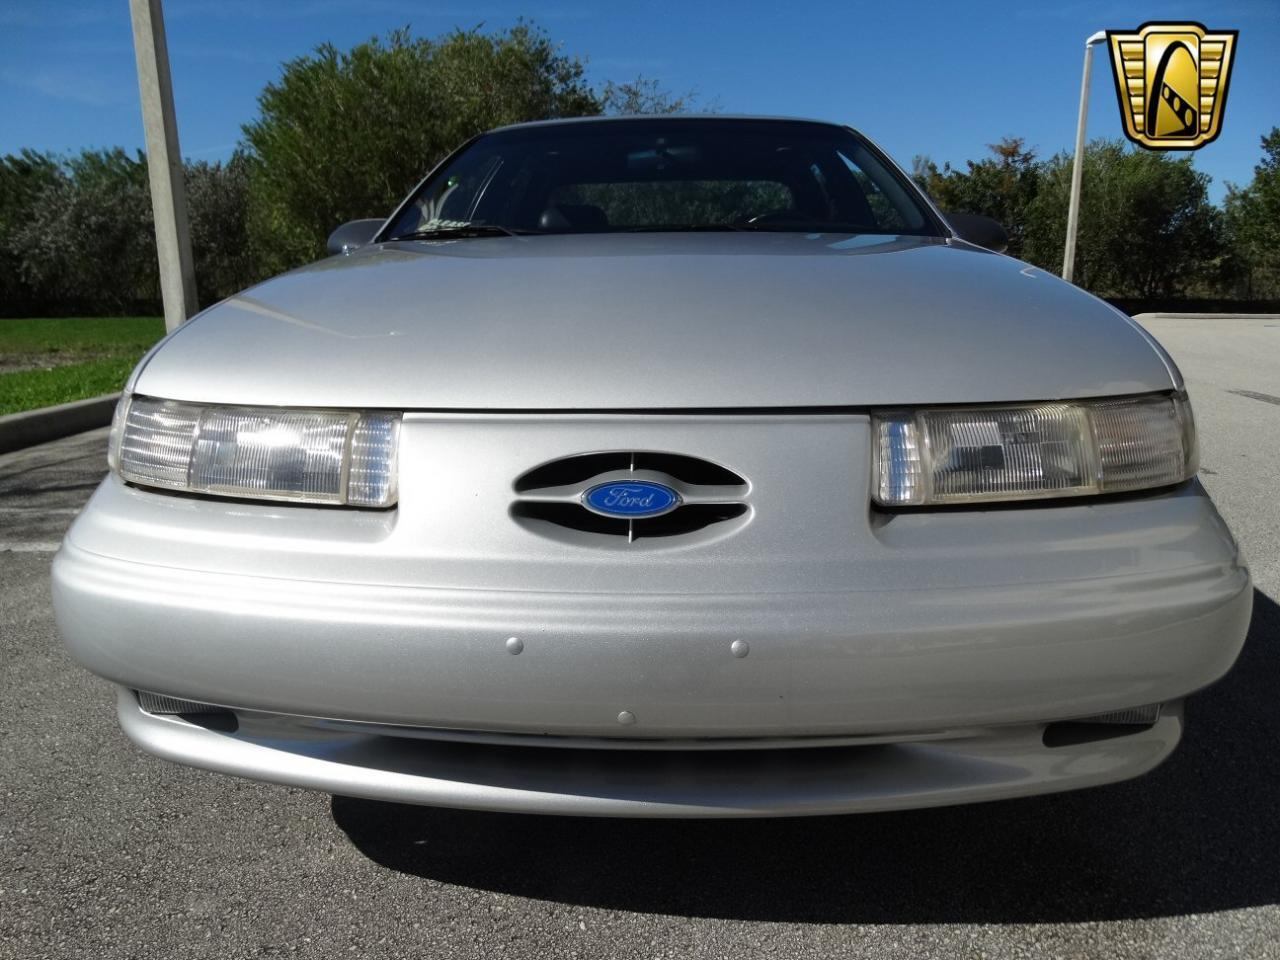 Large Picture of '93 Ford Taurus located in Florida - $9,995.00 - KEXL